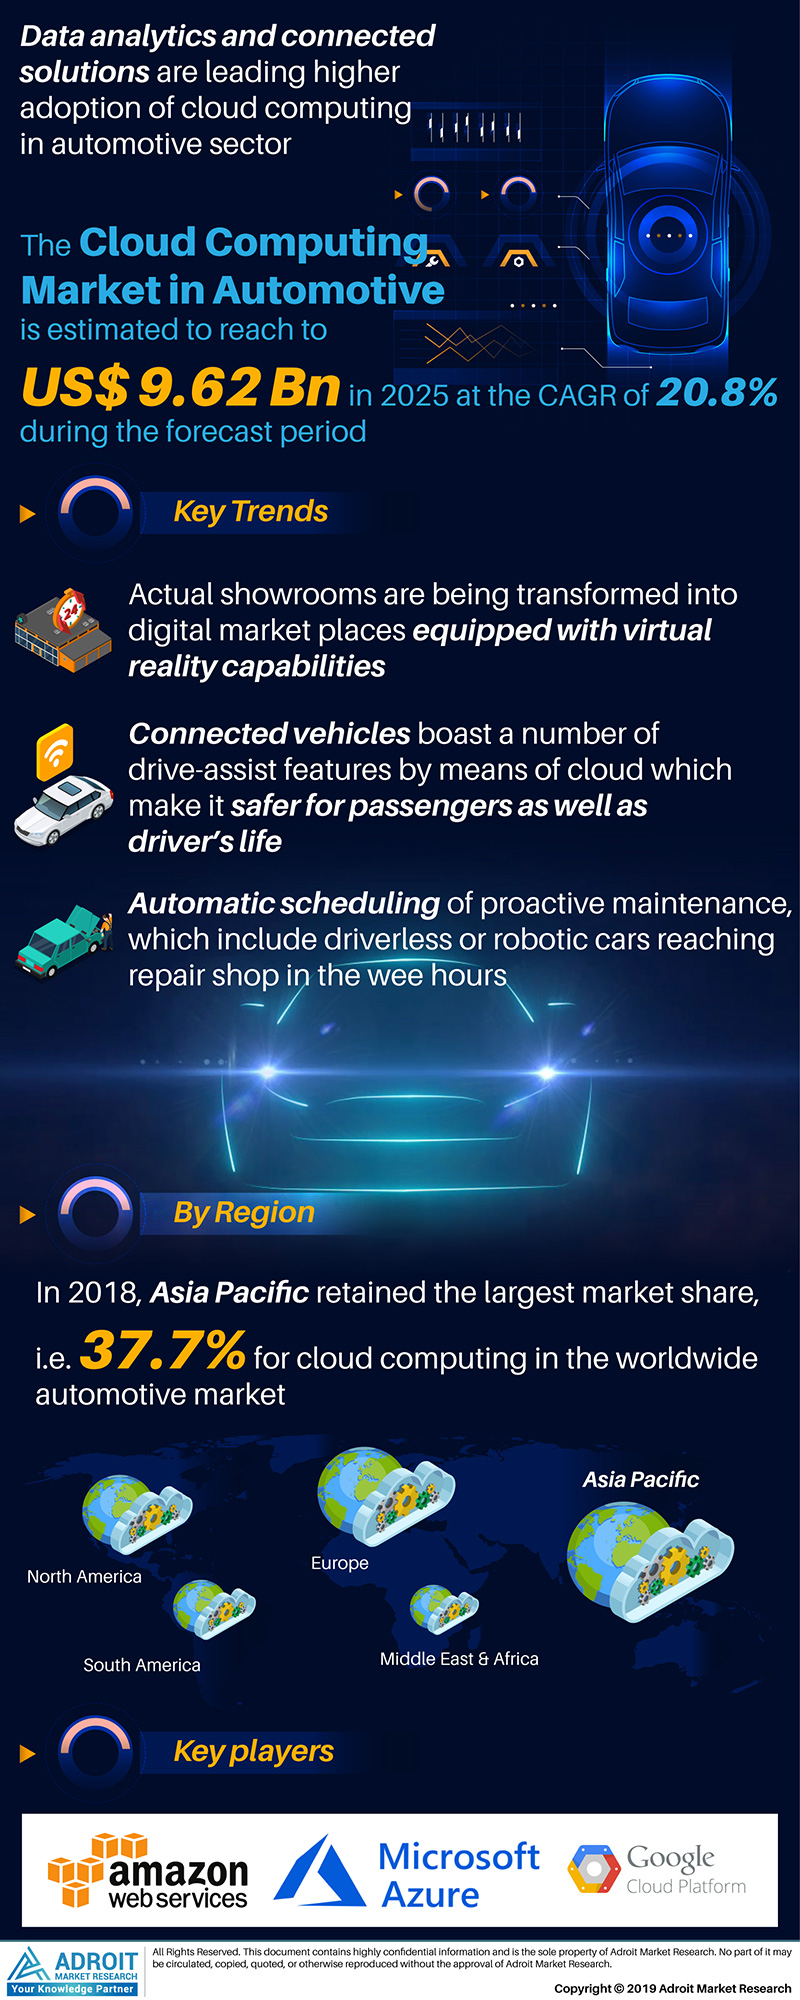 Global Cloud Computing in Automotive Market Size 2017 By Region and Forecast 2019 to 2025